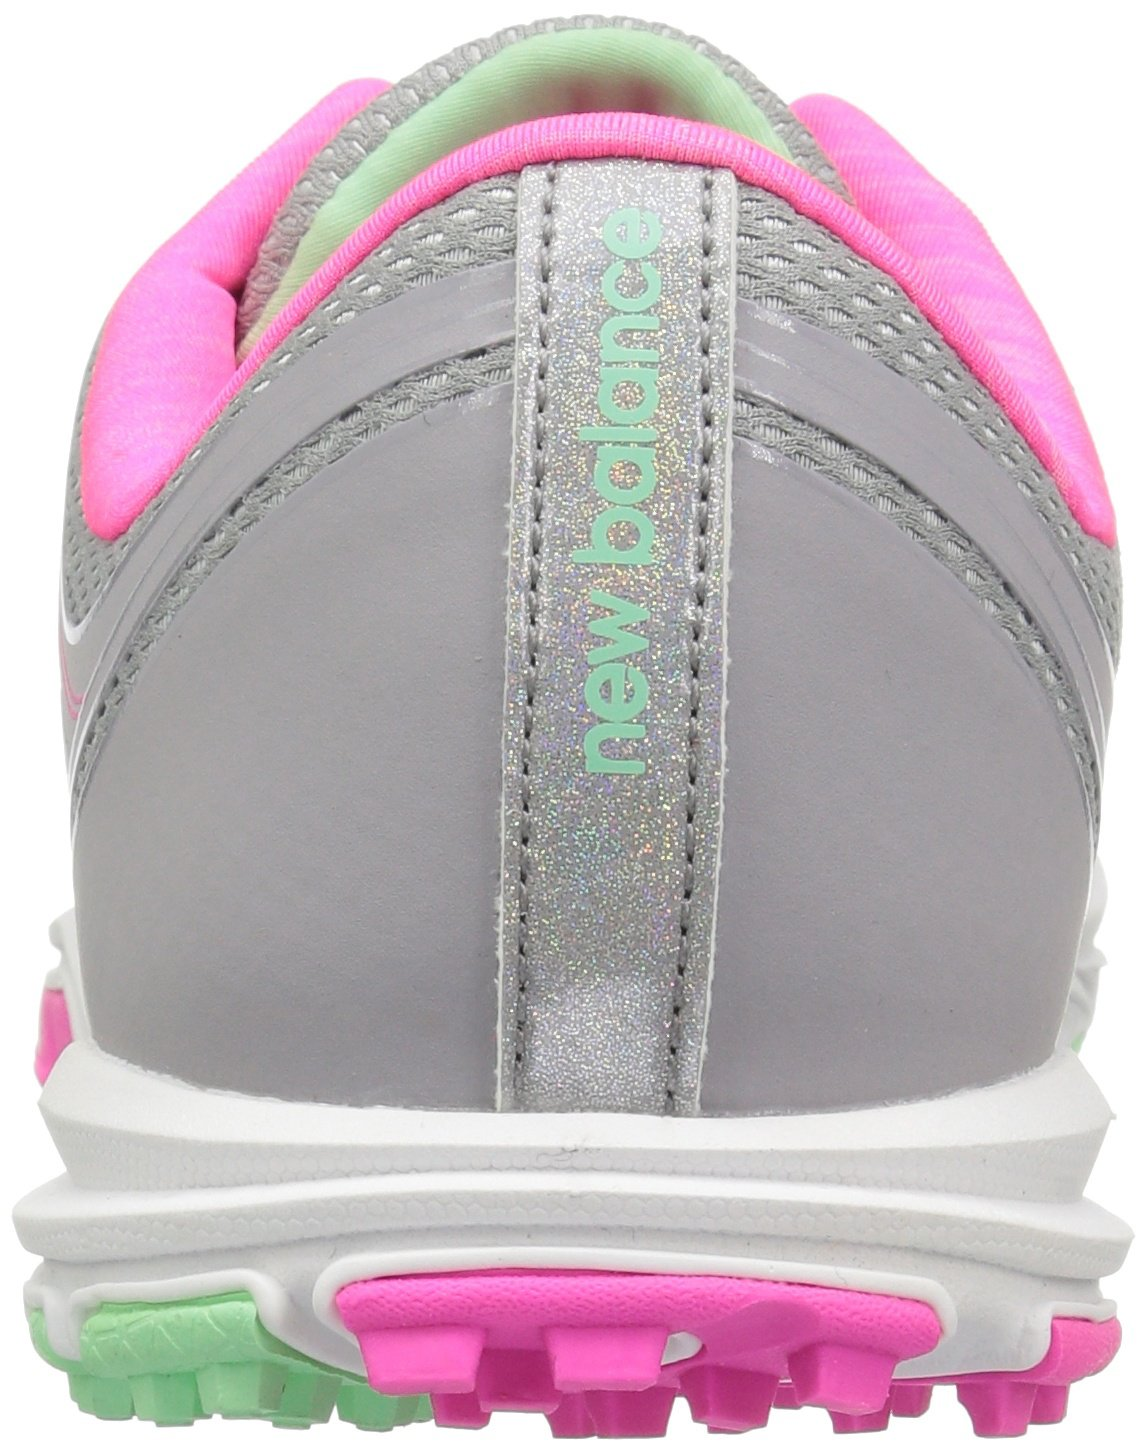 New Shoe Balance Women's NBGW1006 Golf Shoe New B01INSCUF8 6 B(M) US|Grey/Pink 5301b4